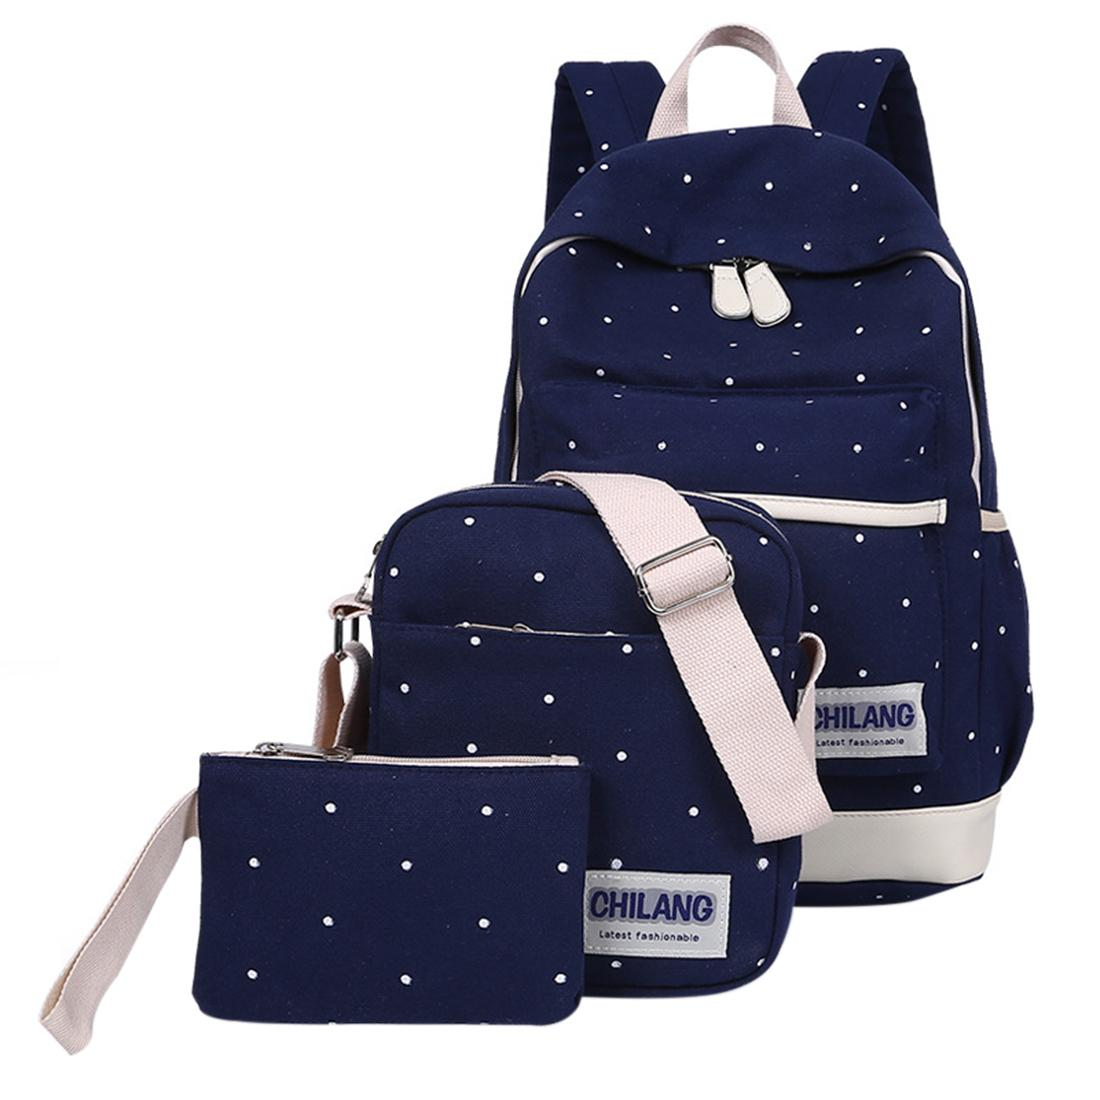 1888e77db679 3Pcs Korean Style Polka Dots Decoration Canvas Backpack Crossbody Bag  Clutch Bag Set - Dark Blue